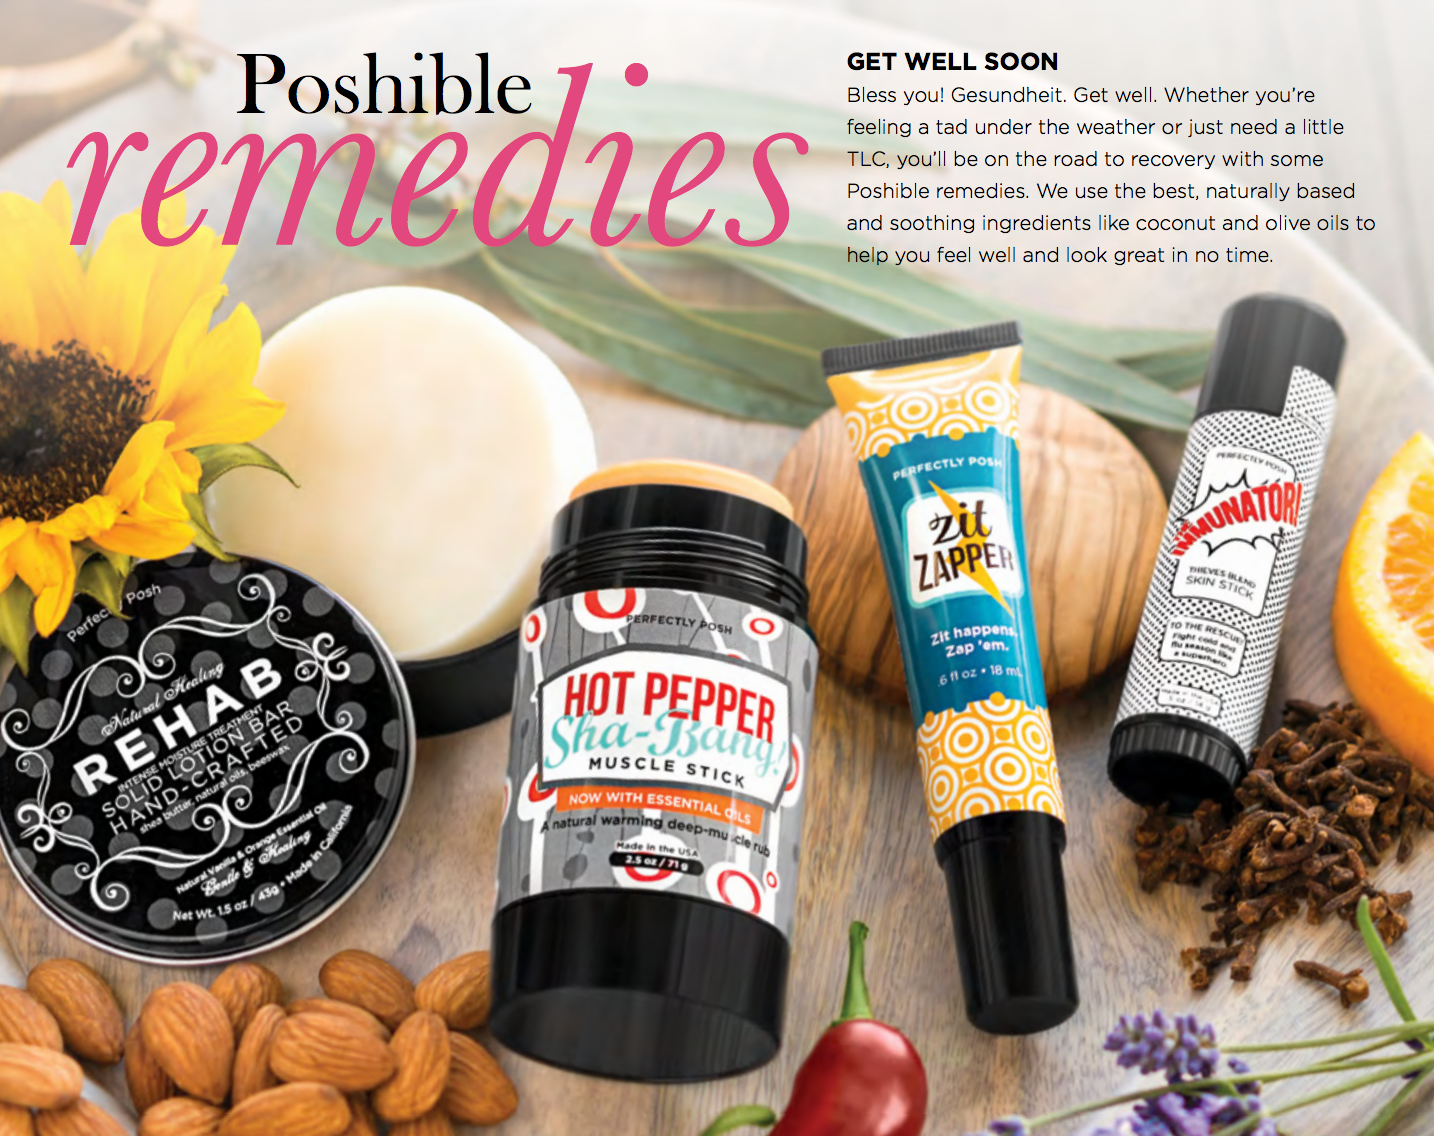 Whether you're feeling a tad bit under the weather or just needing some TLC, you'll be on the road to recovery with some Poshible remedies.  We use the best naturally based and soothing ingredients like coconut and olive oils to help you feel well and look great in no time.  Shop online at aimeeposh.com!